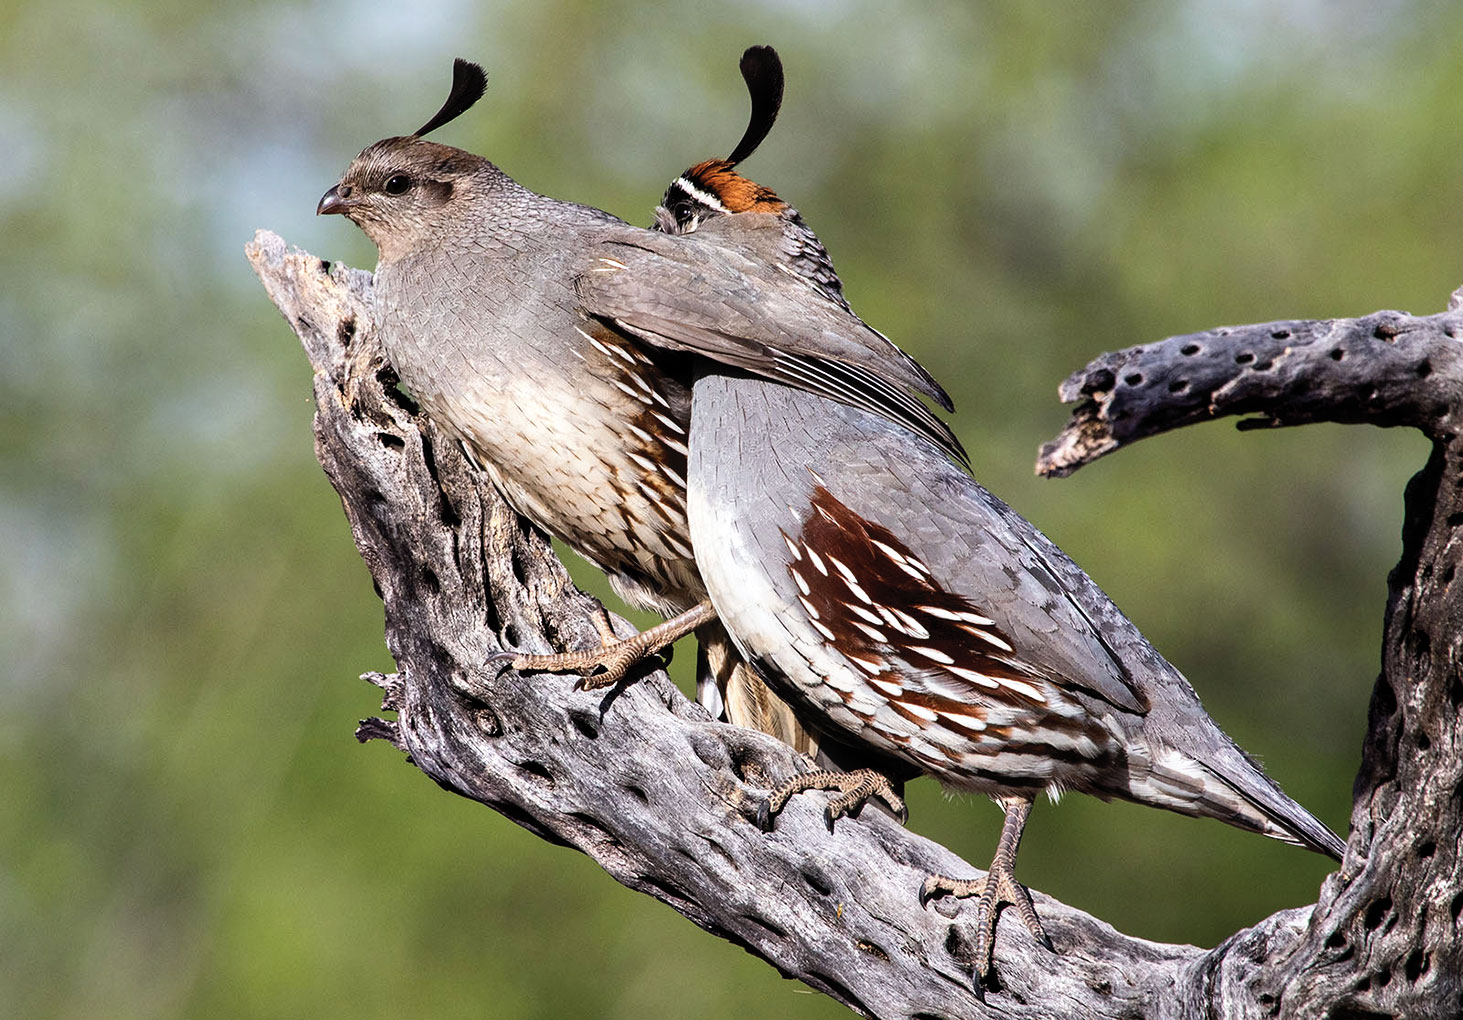 Jeff Krueger's first place photo, Affection Quail Style